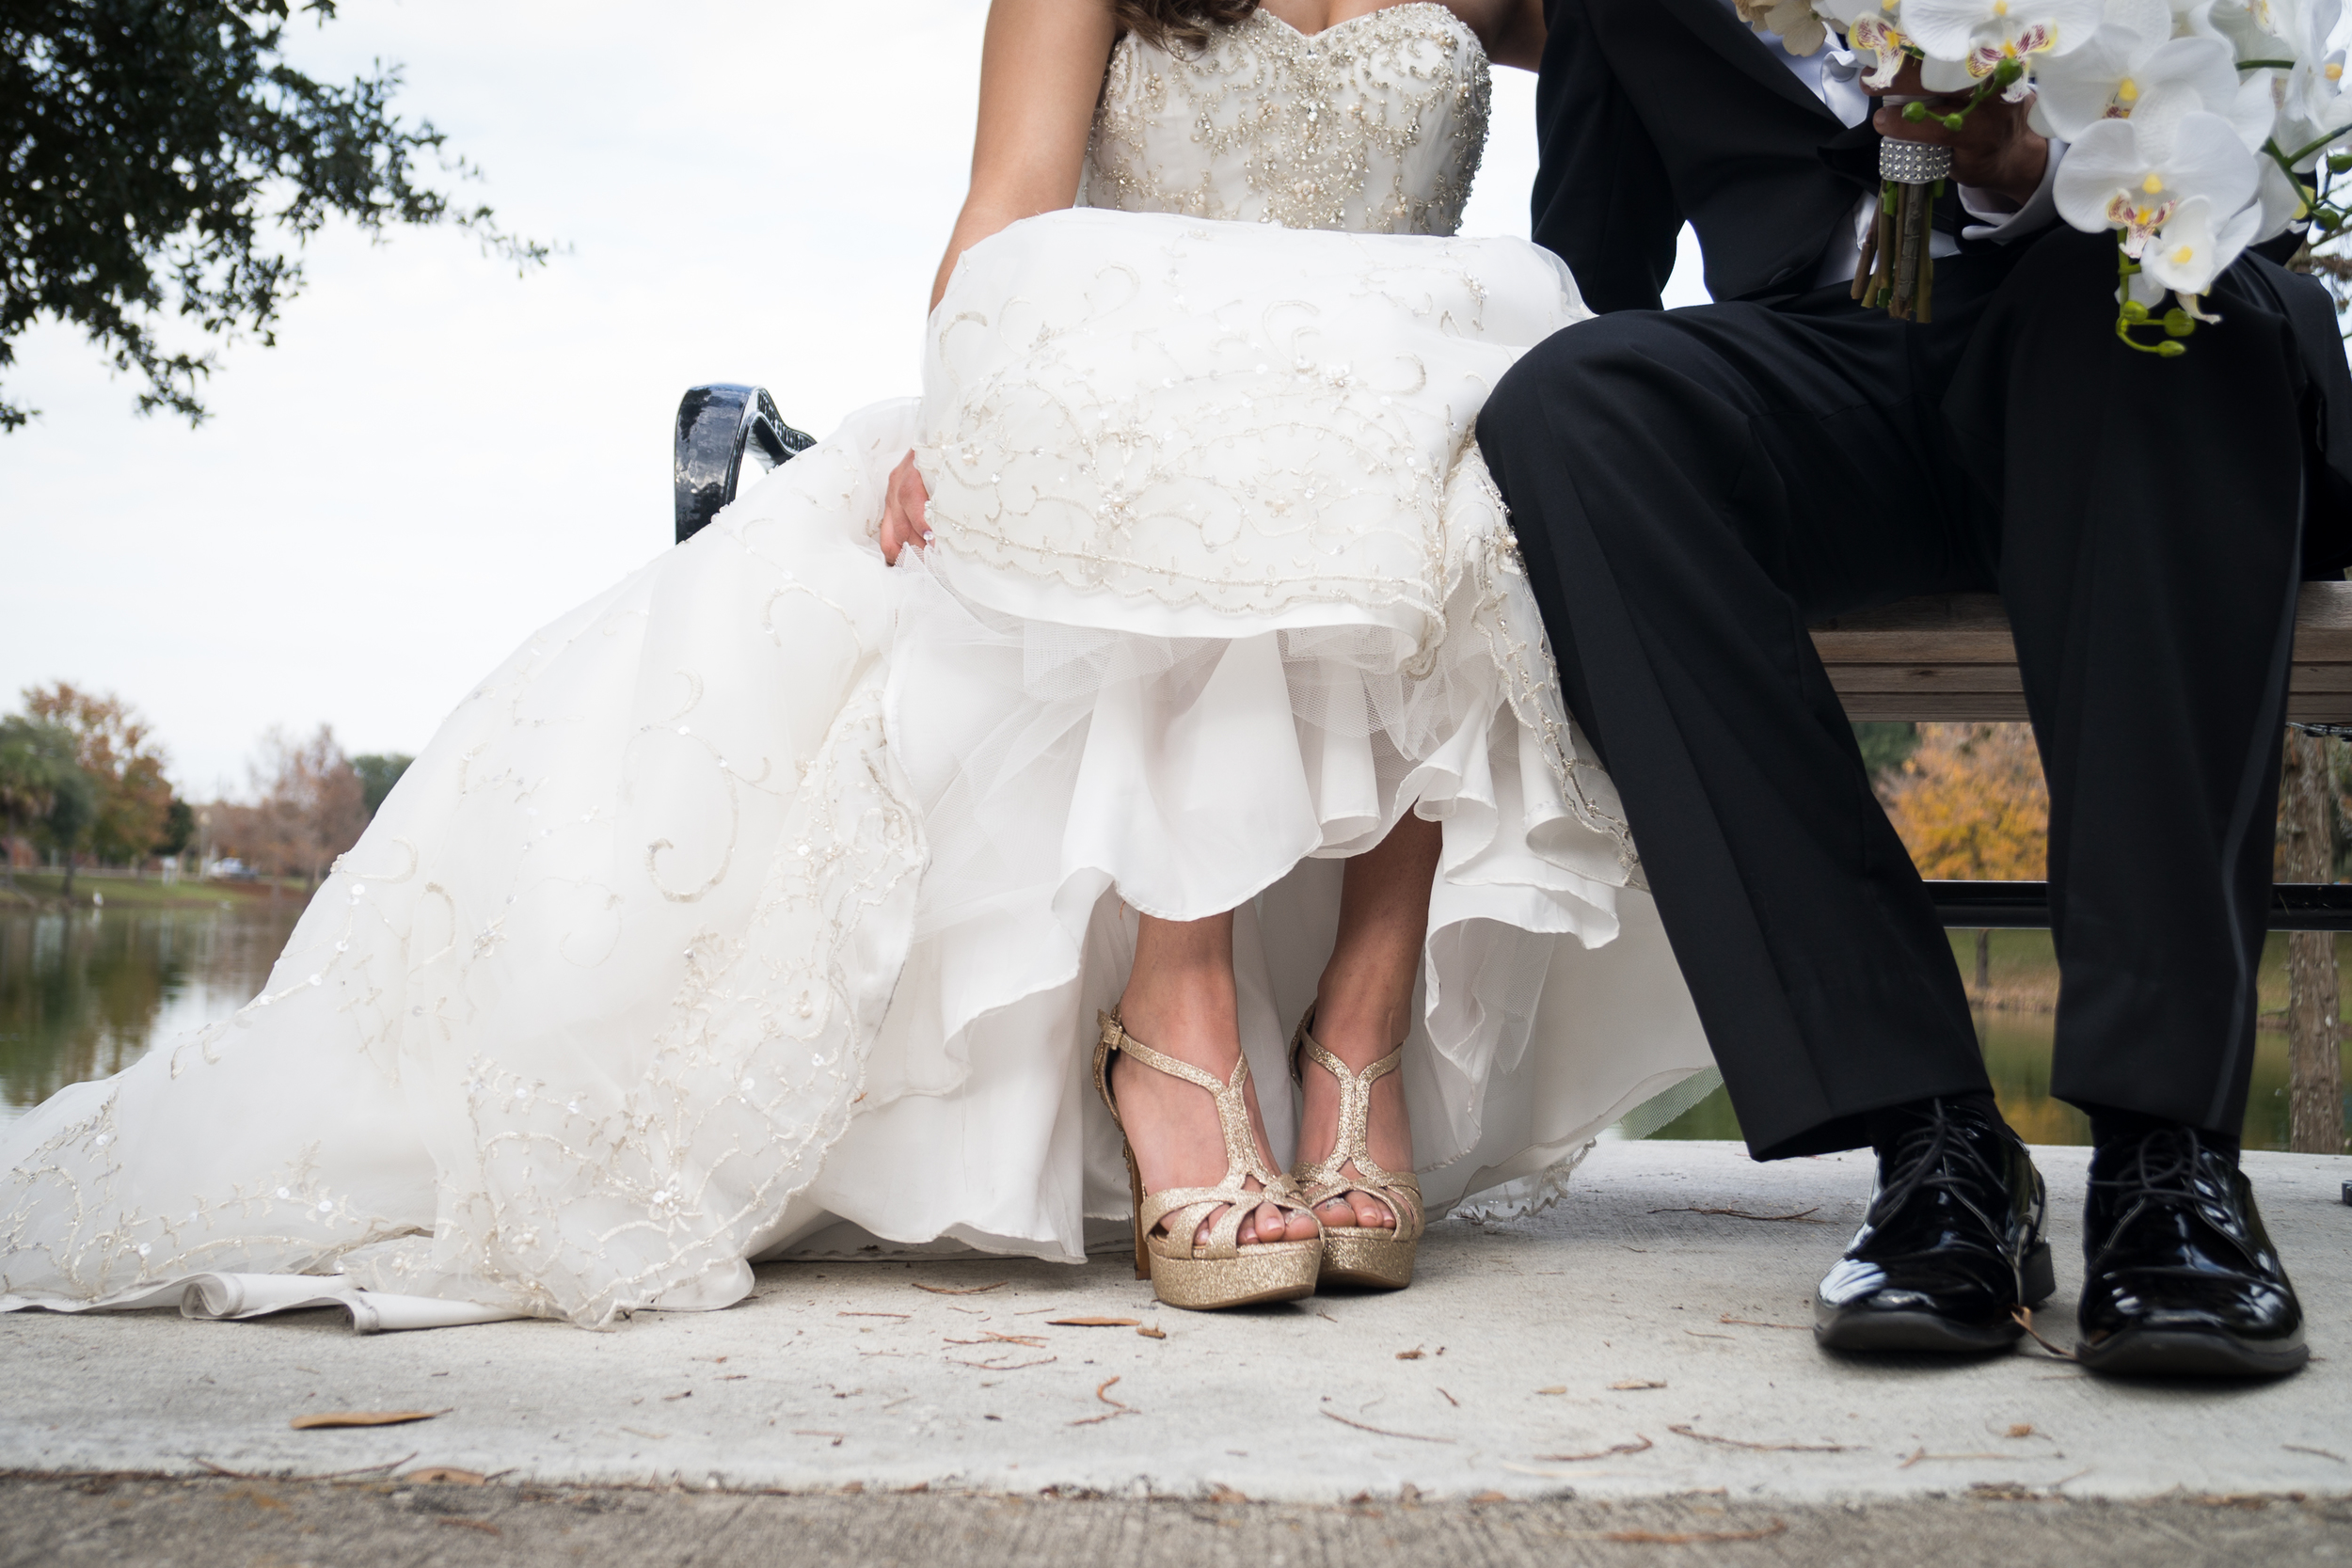 Ocala Wedding photographer, Tampa wedding photographer. Hilton elegant wedding